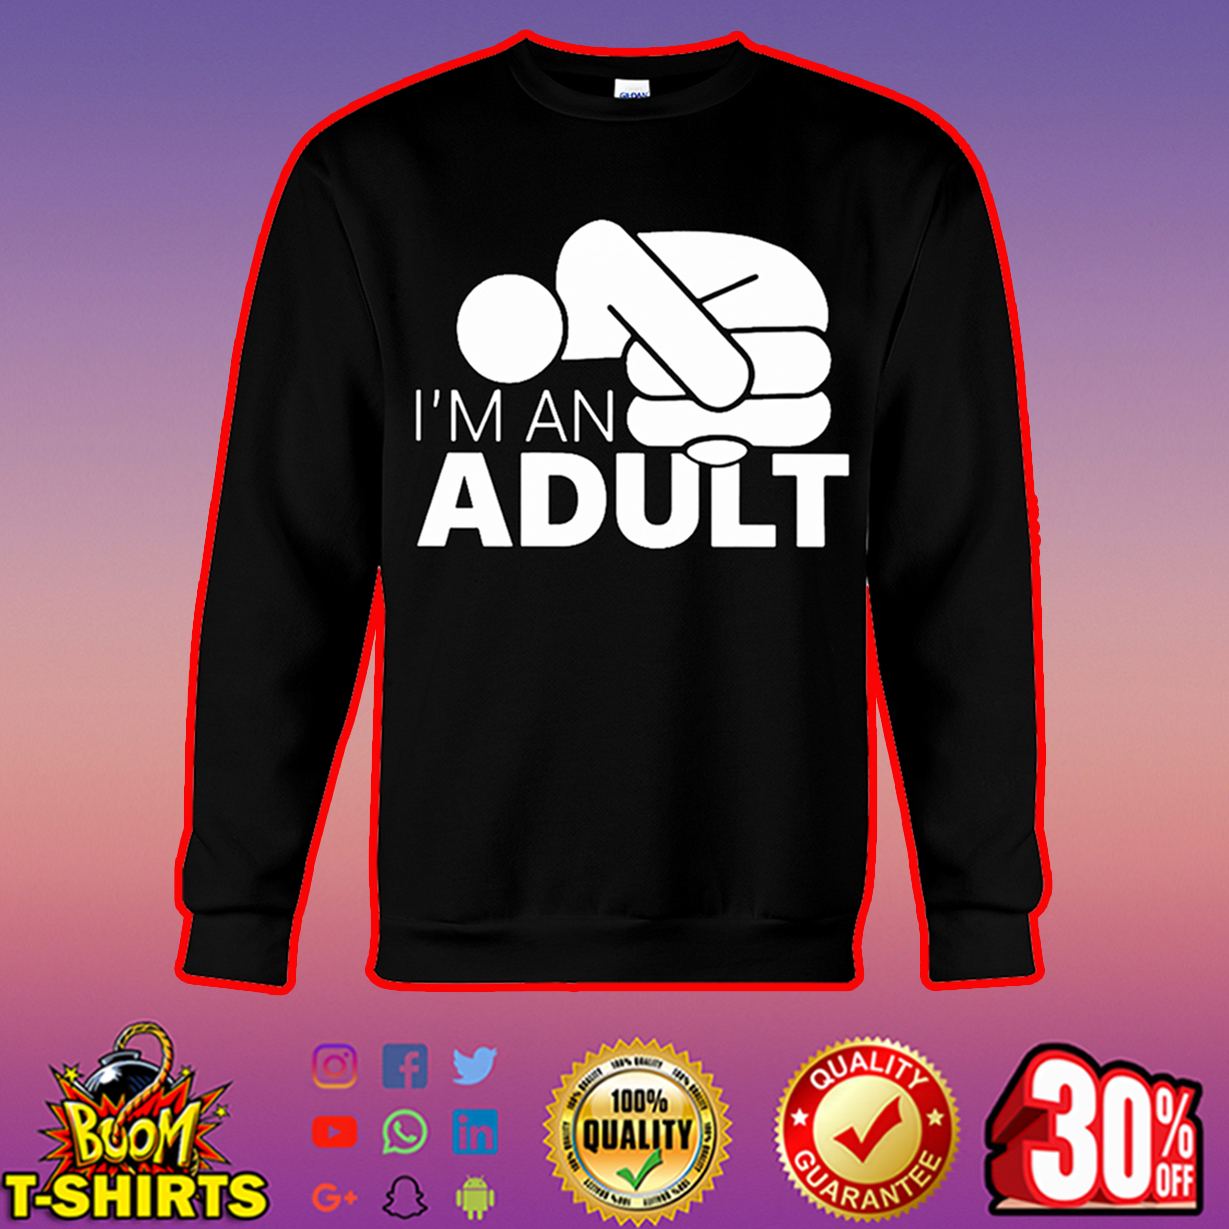 I'm an adult sweatshirt